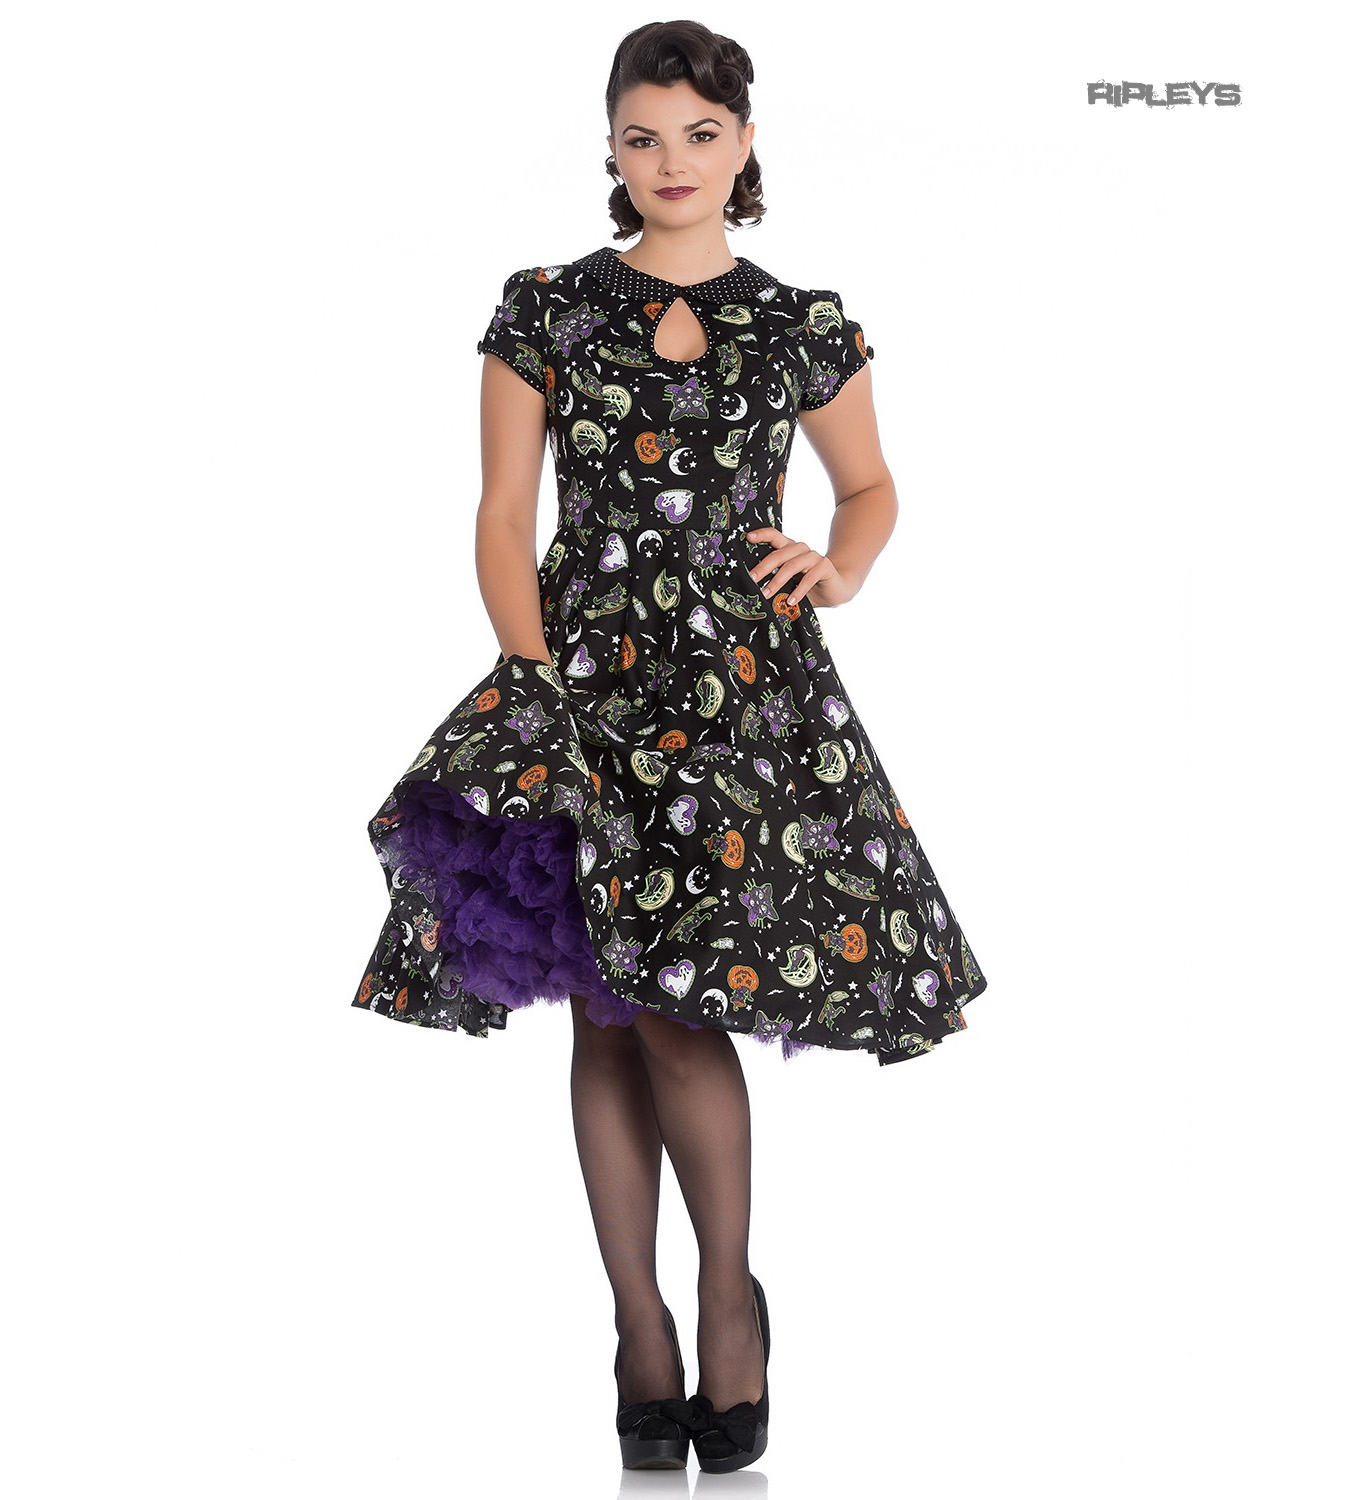 Hell-Bunny-50s-Black-Pin-Up-Dress-Horror-Witchy-SALEM-Halloween-All-Sizes thumbnail 10